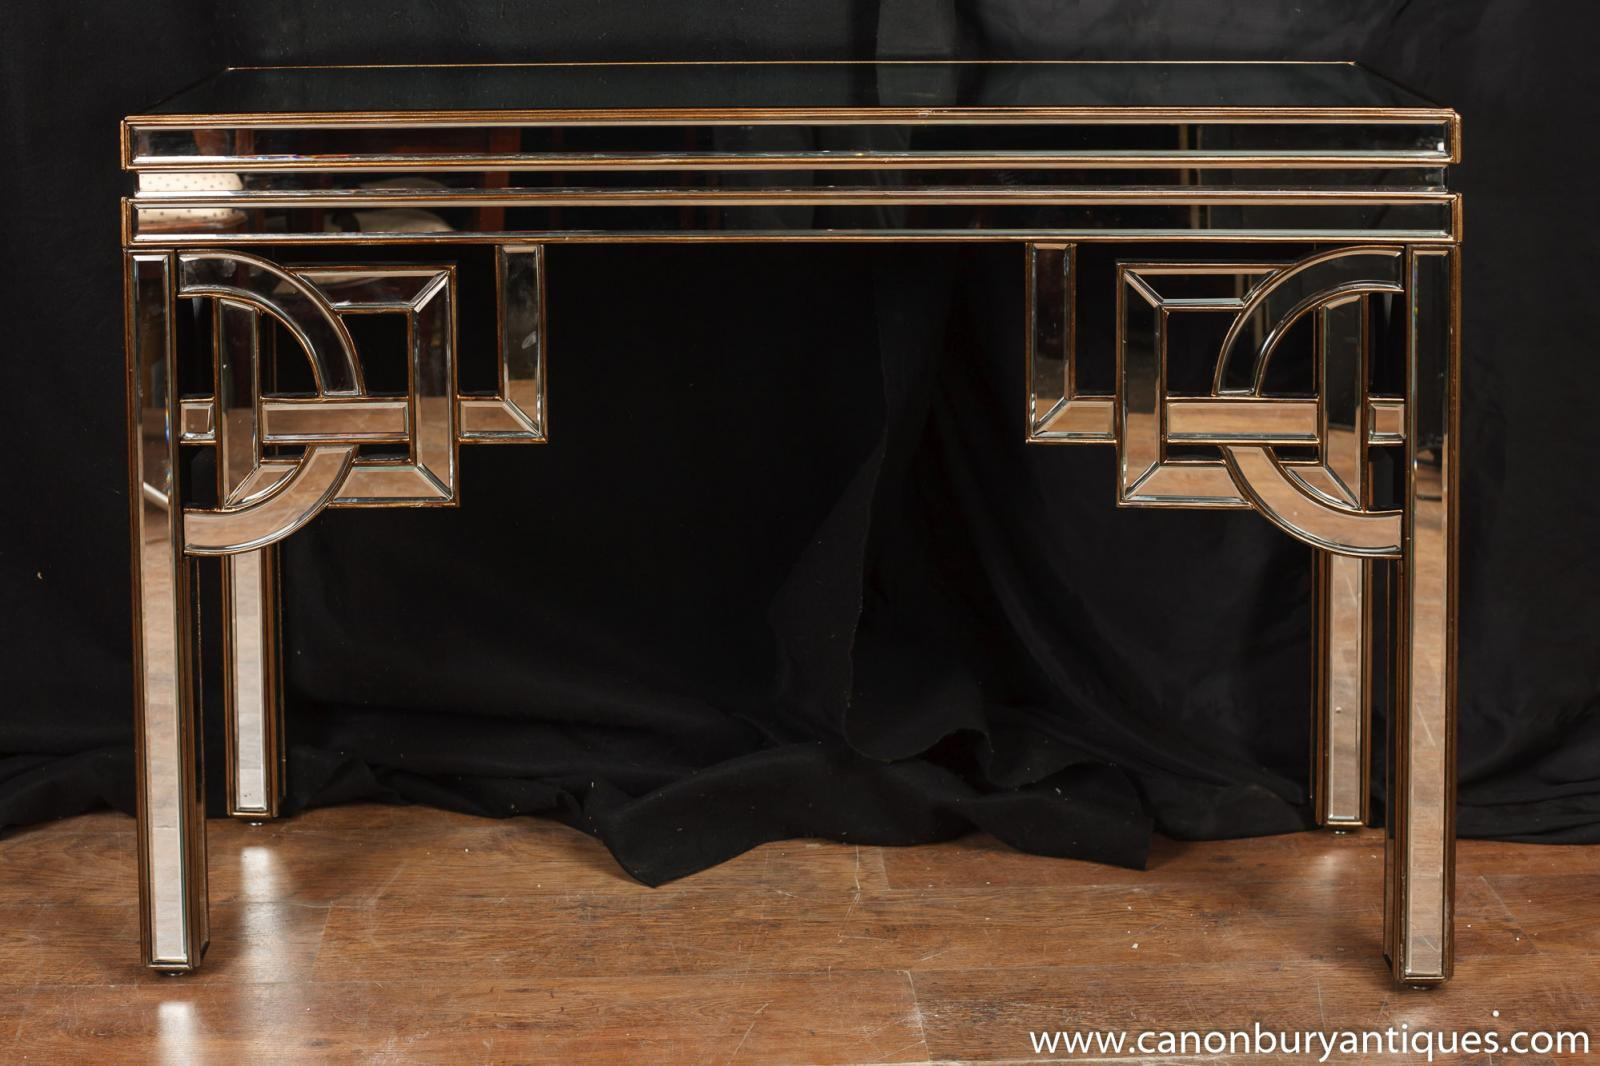 art deco mirrored console table hall tables 1920s furniture. Black Bedroom Furniture Sets. Home Design Ideas